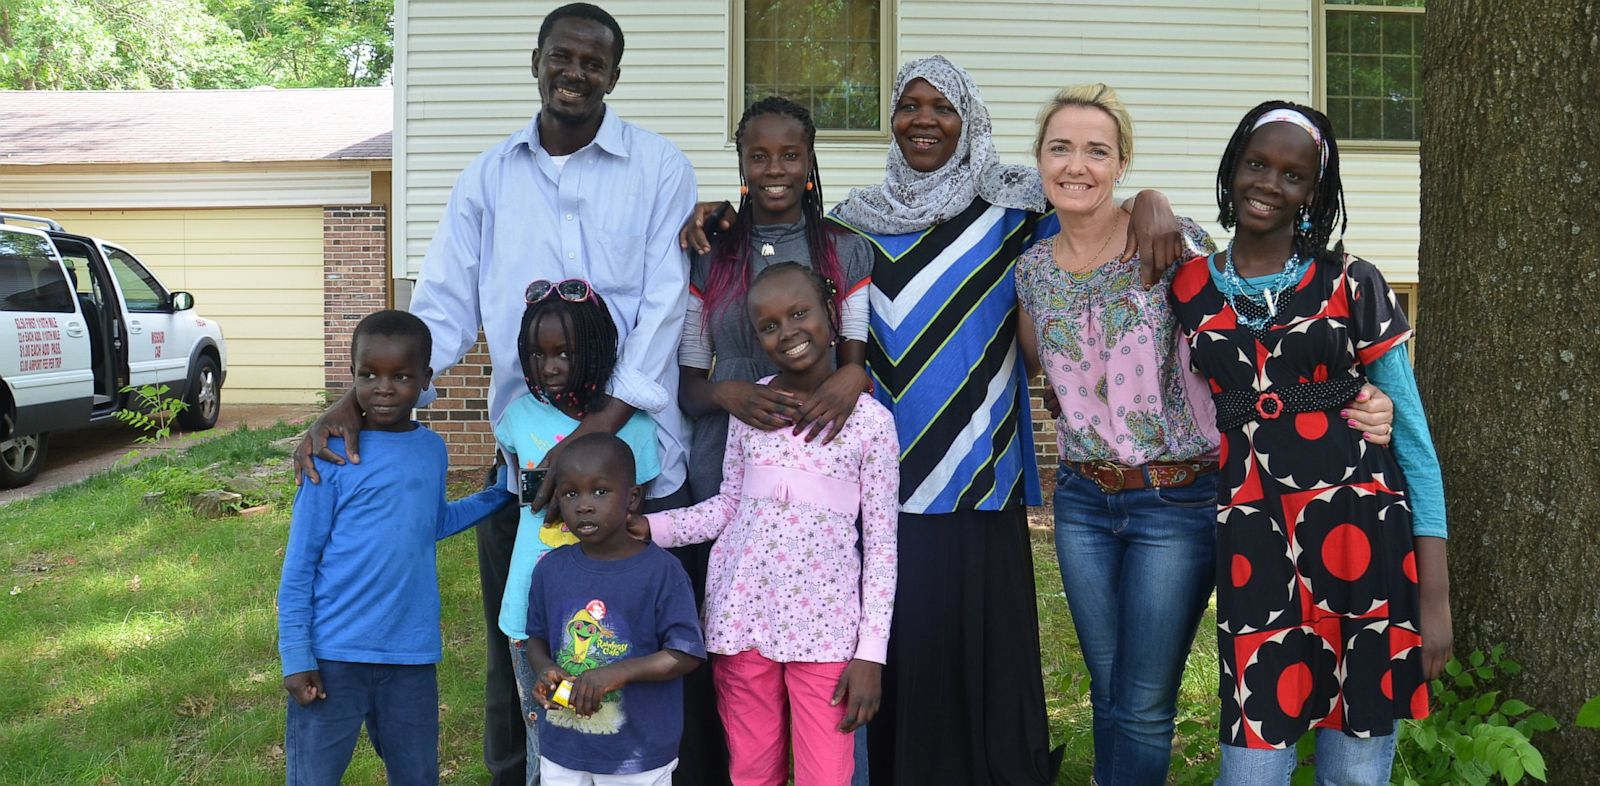 PHOTO: Teen Reunited With Family Separated In Dafur